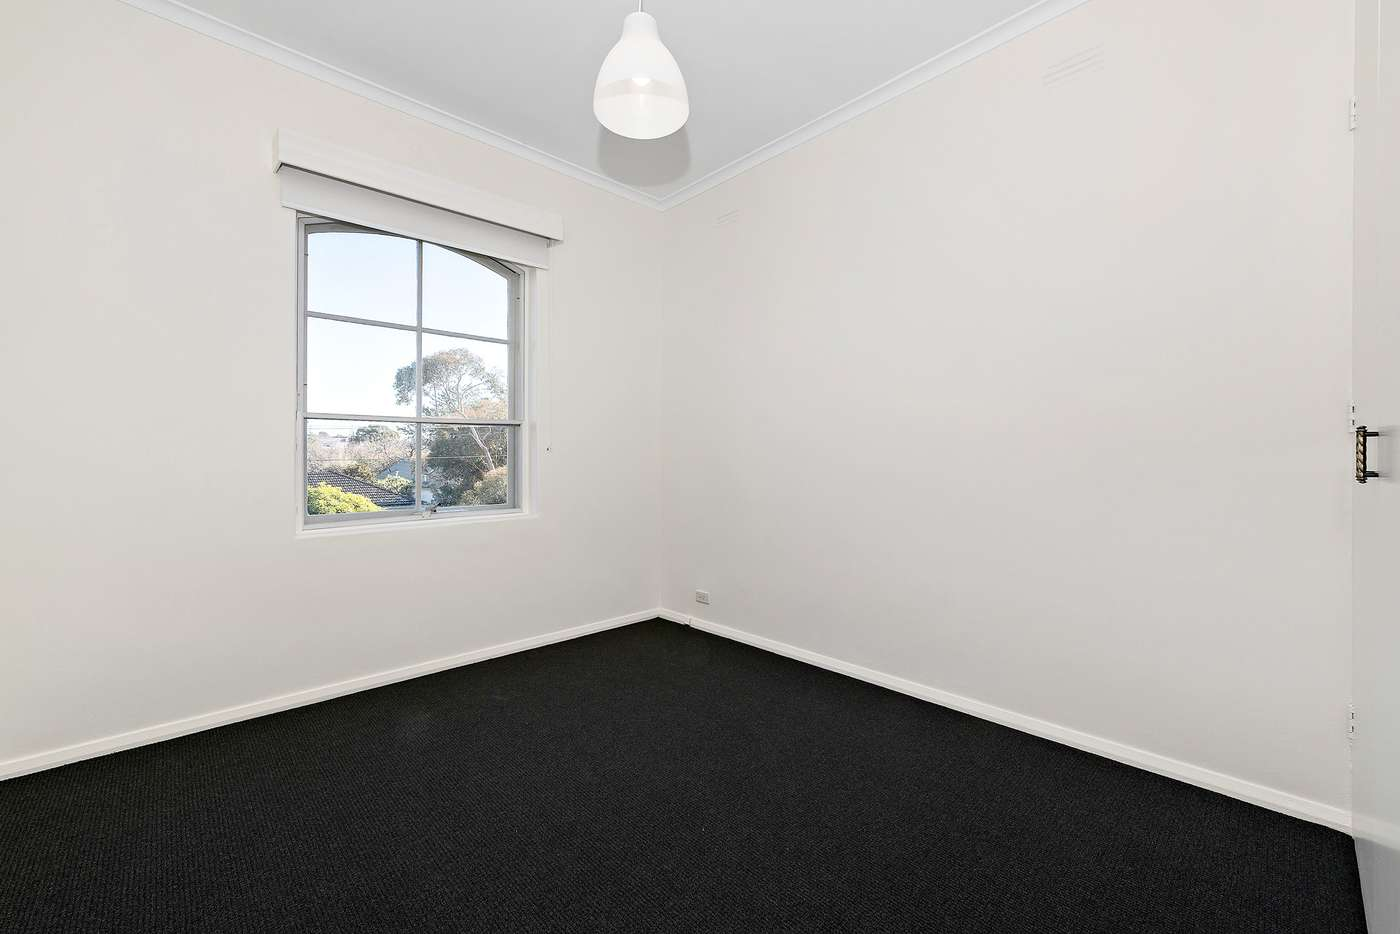 Sixth view of Homely apartment listing, 5/34 Edgar Street, Glen Iris VIC 3146